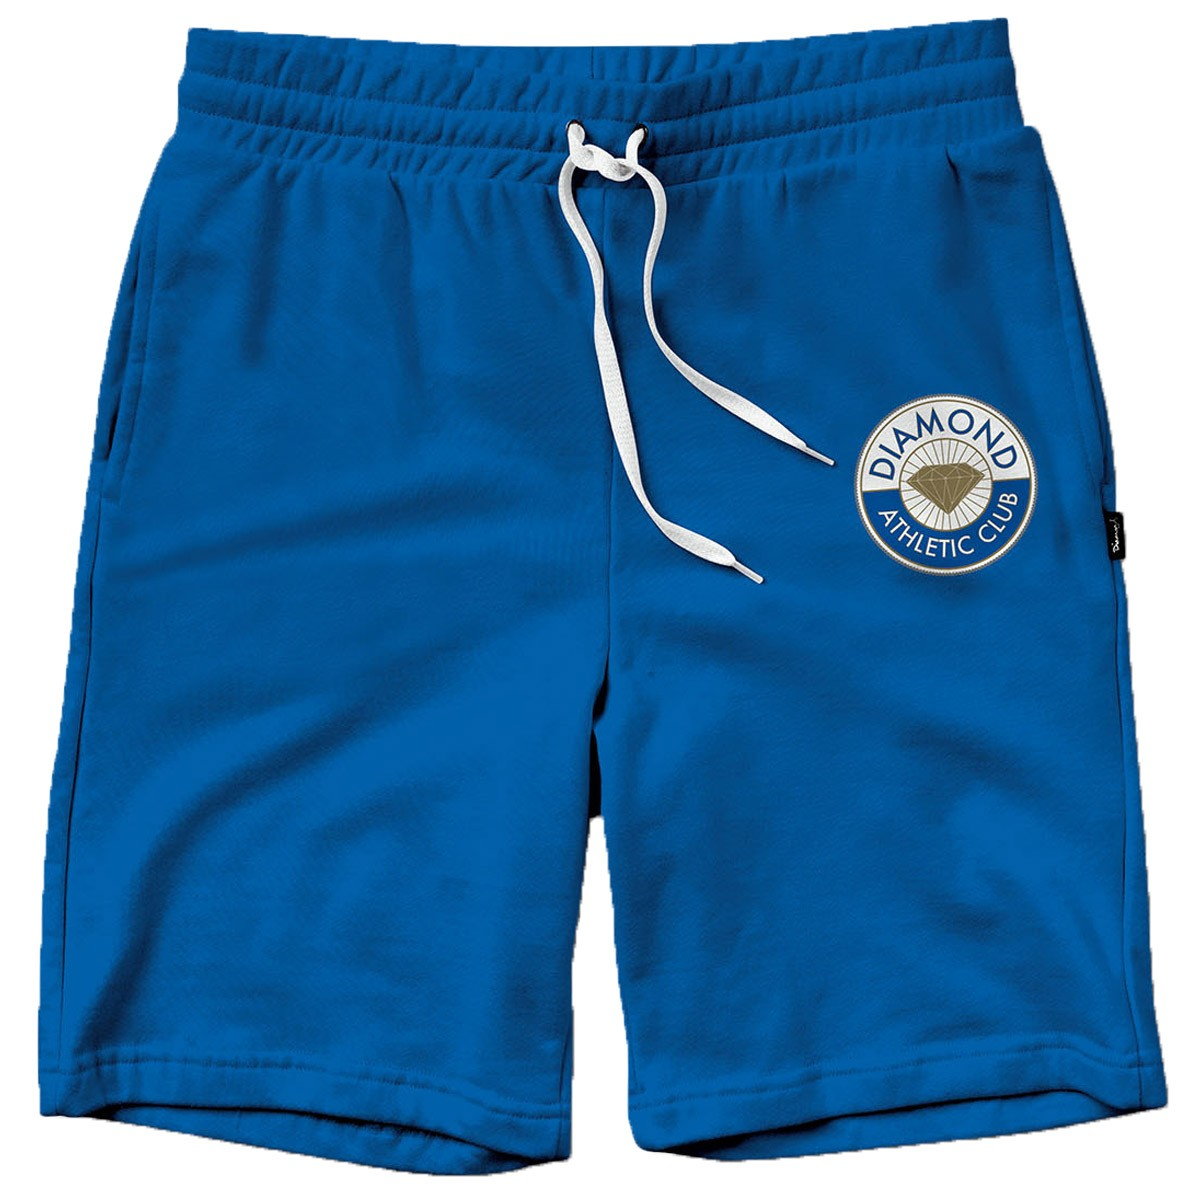 Supply Co. Athletic Club Sweat Shorts - Royal Blue